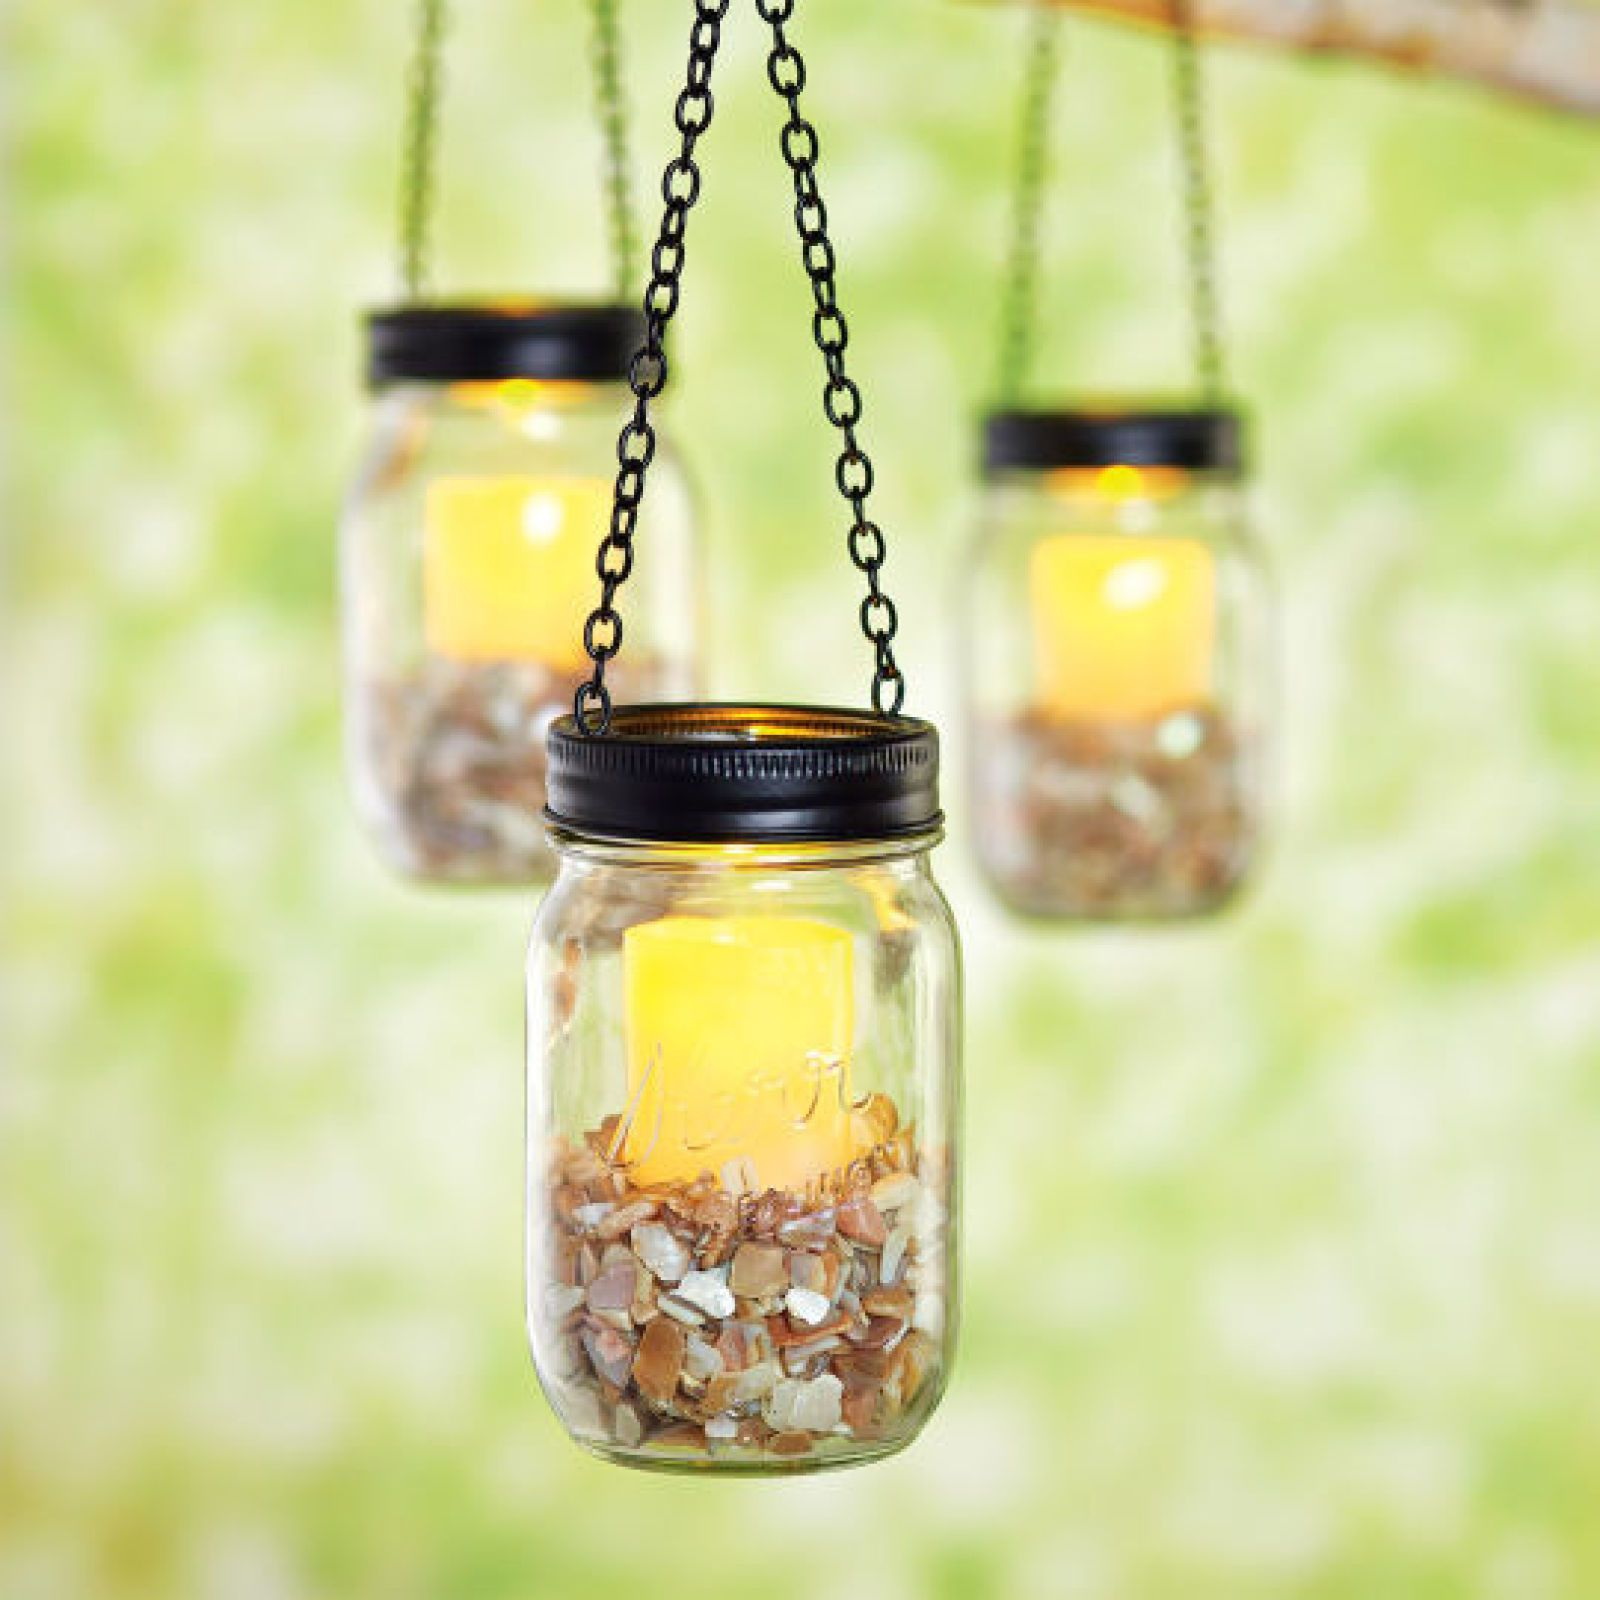 Diy hanging mason jars for home or garden crafts to try give your garden or patio gorgeous glowing light with these trendy hanging mason jar lights with our new ashland mason jar lids diy outdoor lighting has aloadofball Image collections